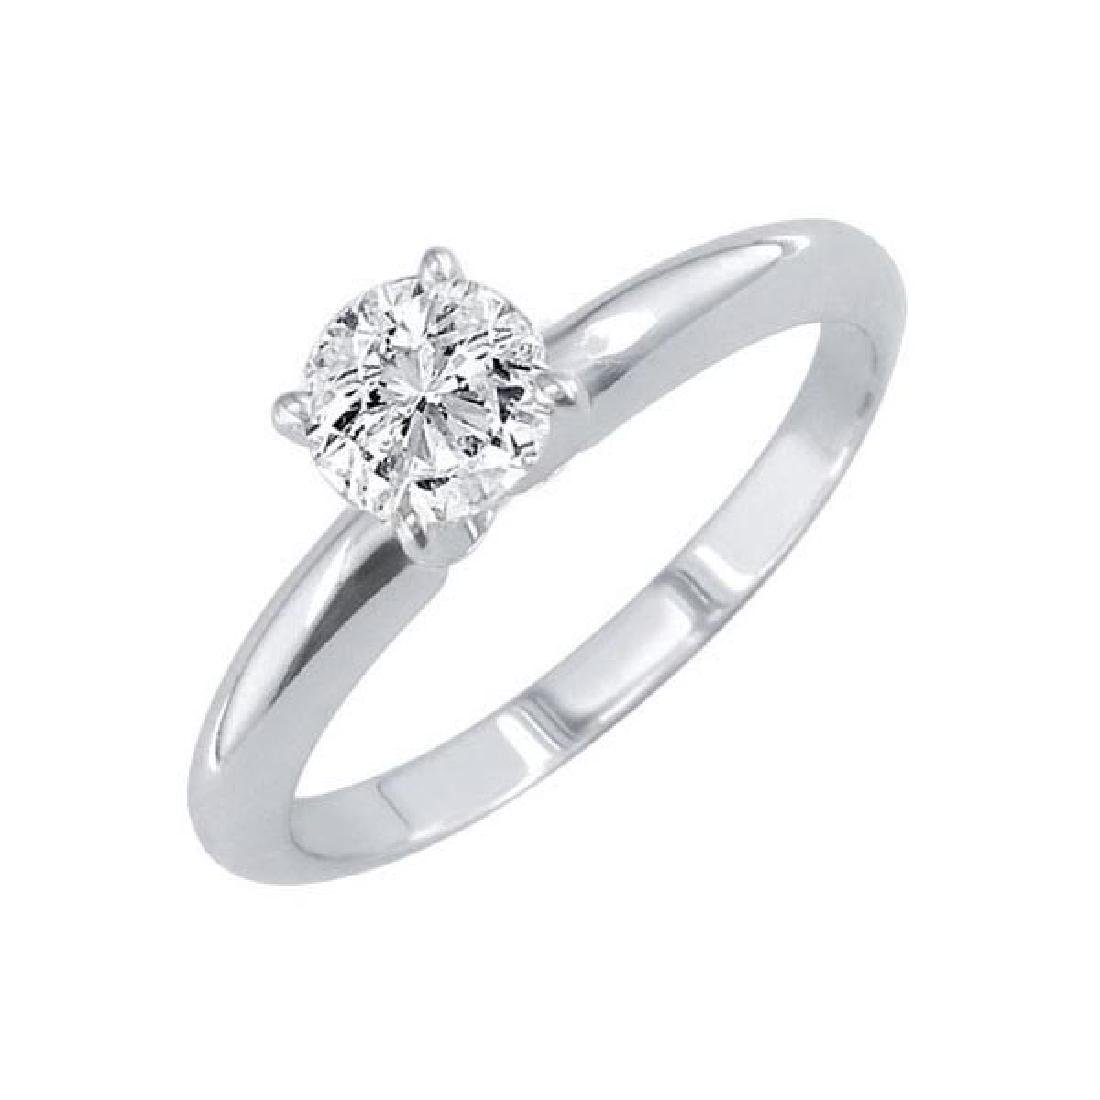 Certified 0.56 CTW Round Diamond Solitaire 14k Ring F/I